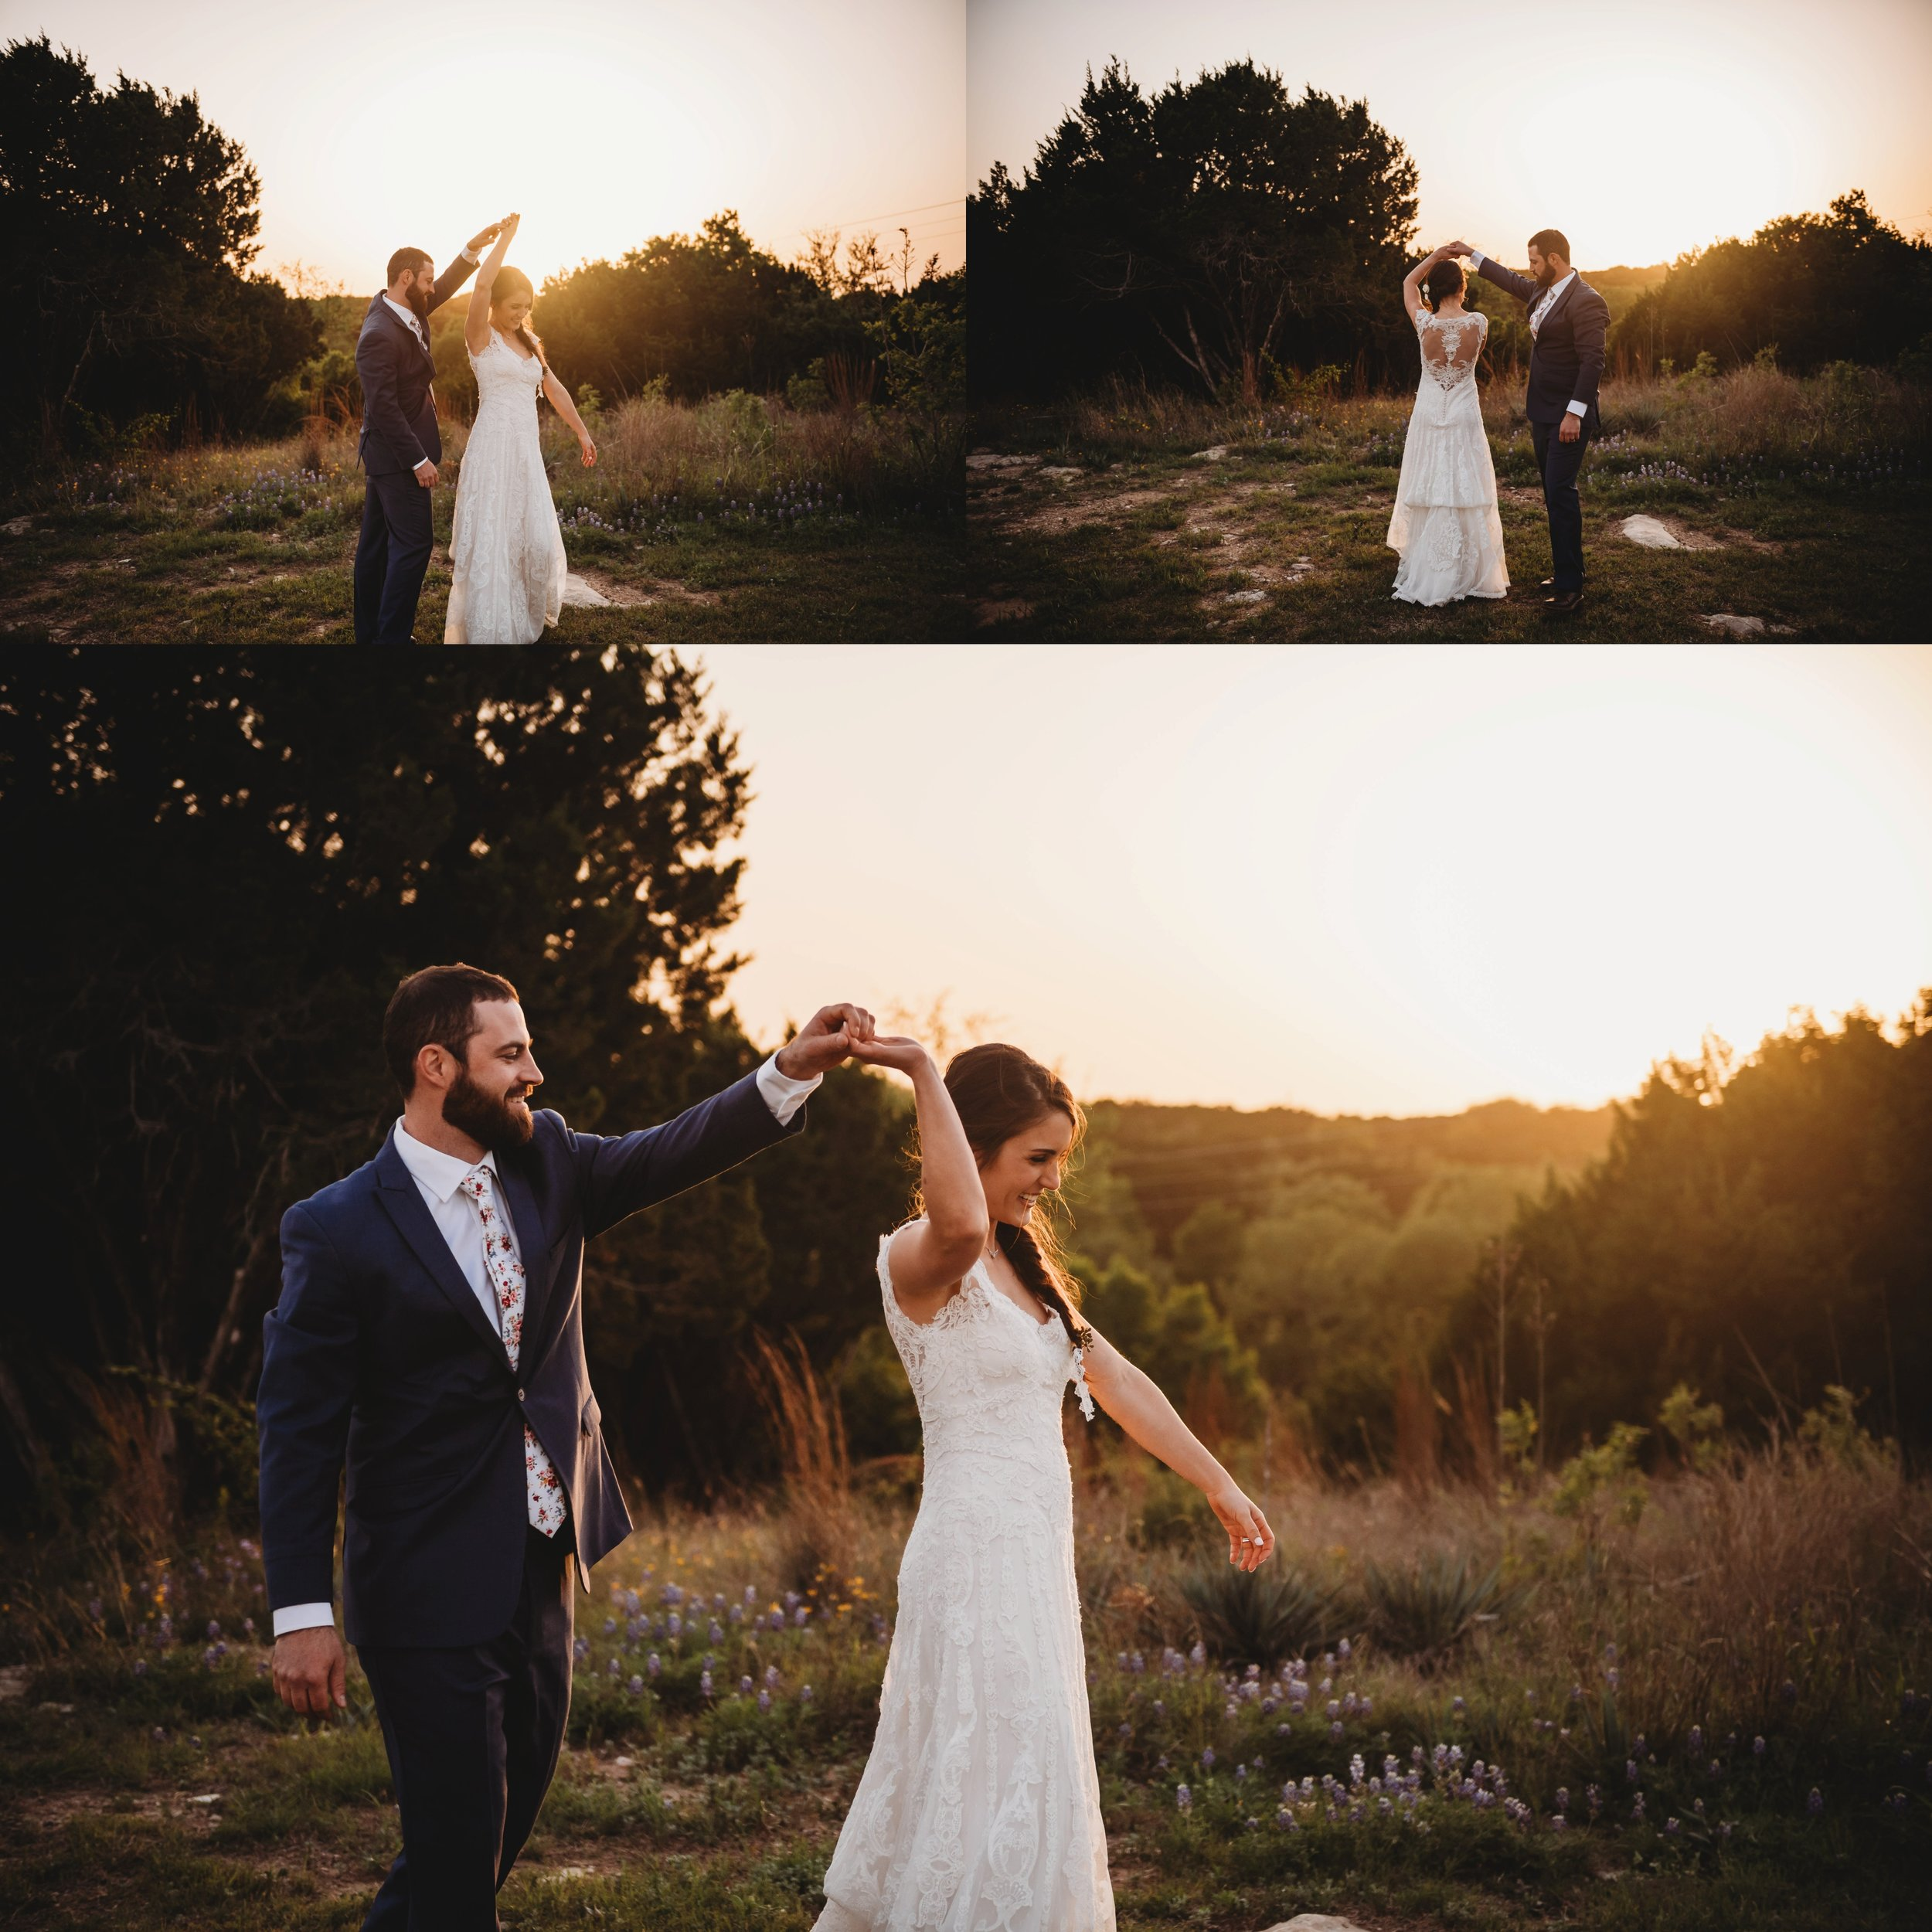 The-White-Fiore-Five-Oaks-Farm-Fort-Worth-Wedding-Planner-Bride-And-Groom-Portraits_011.jpg